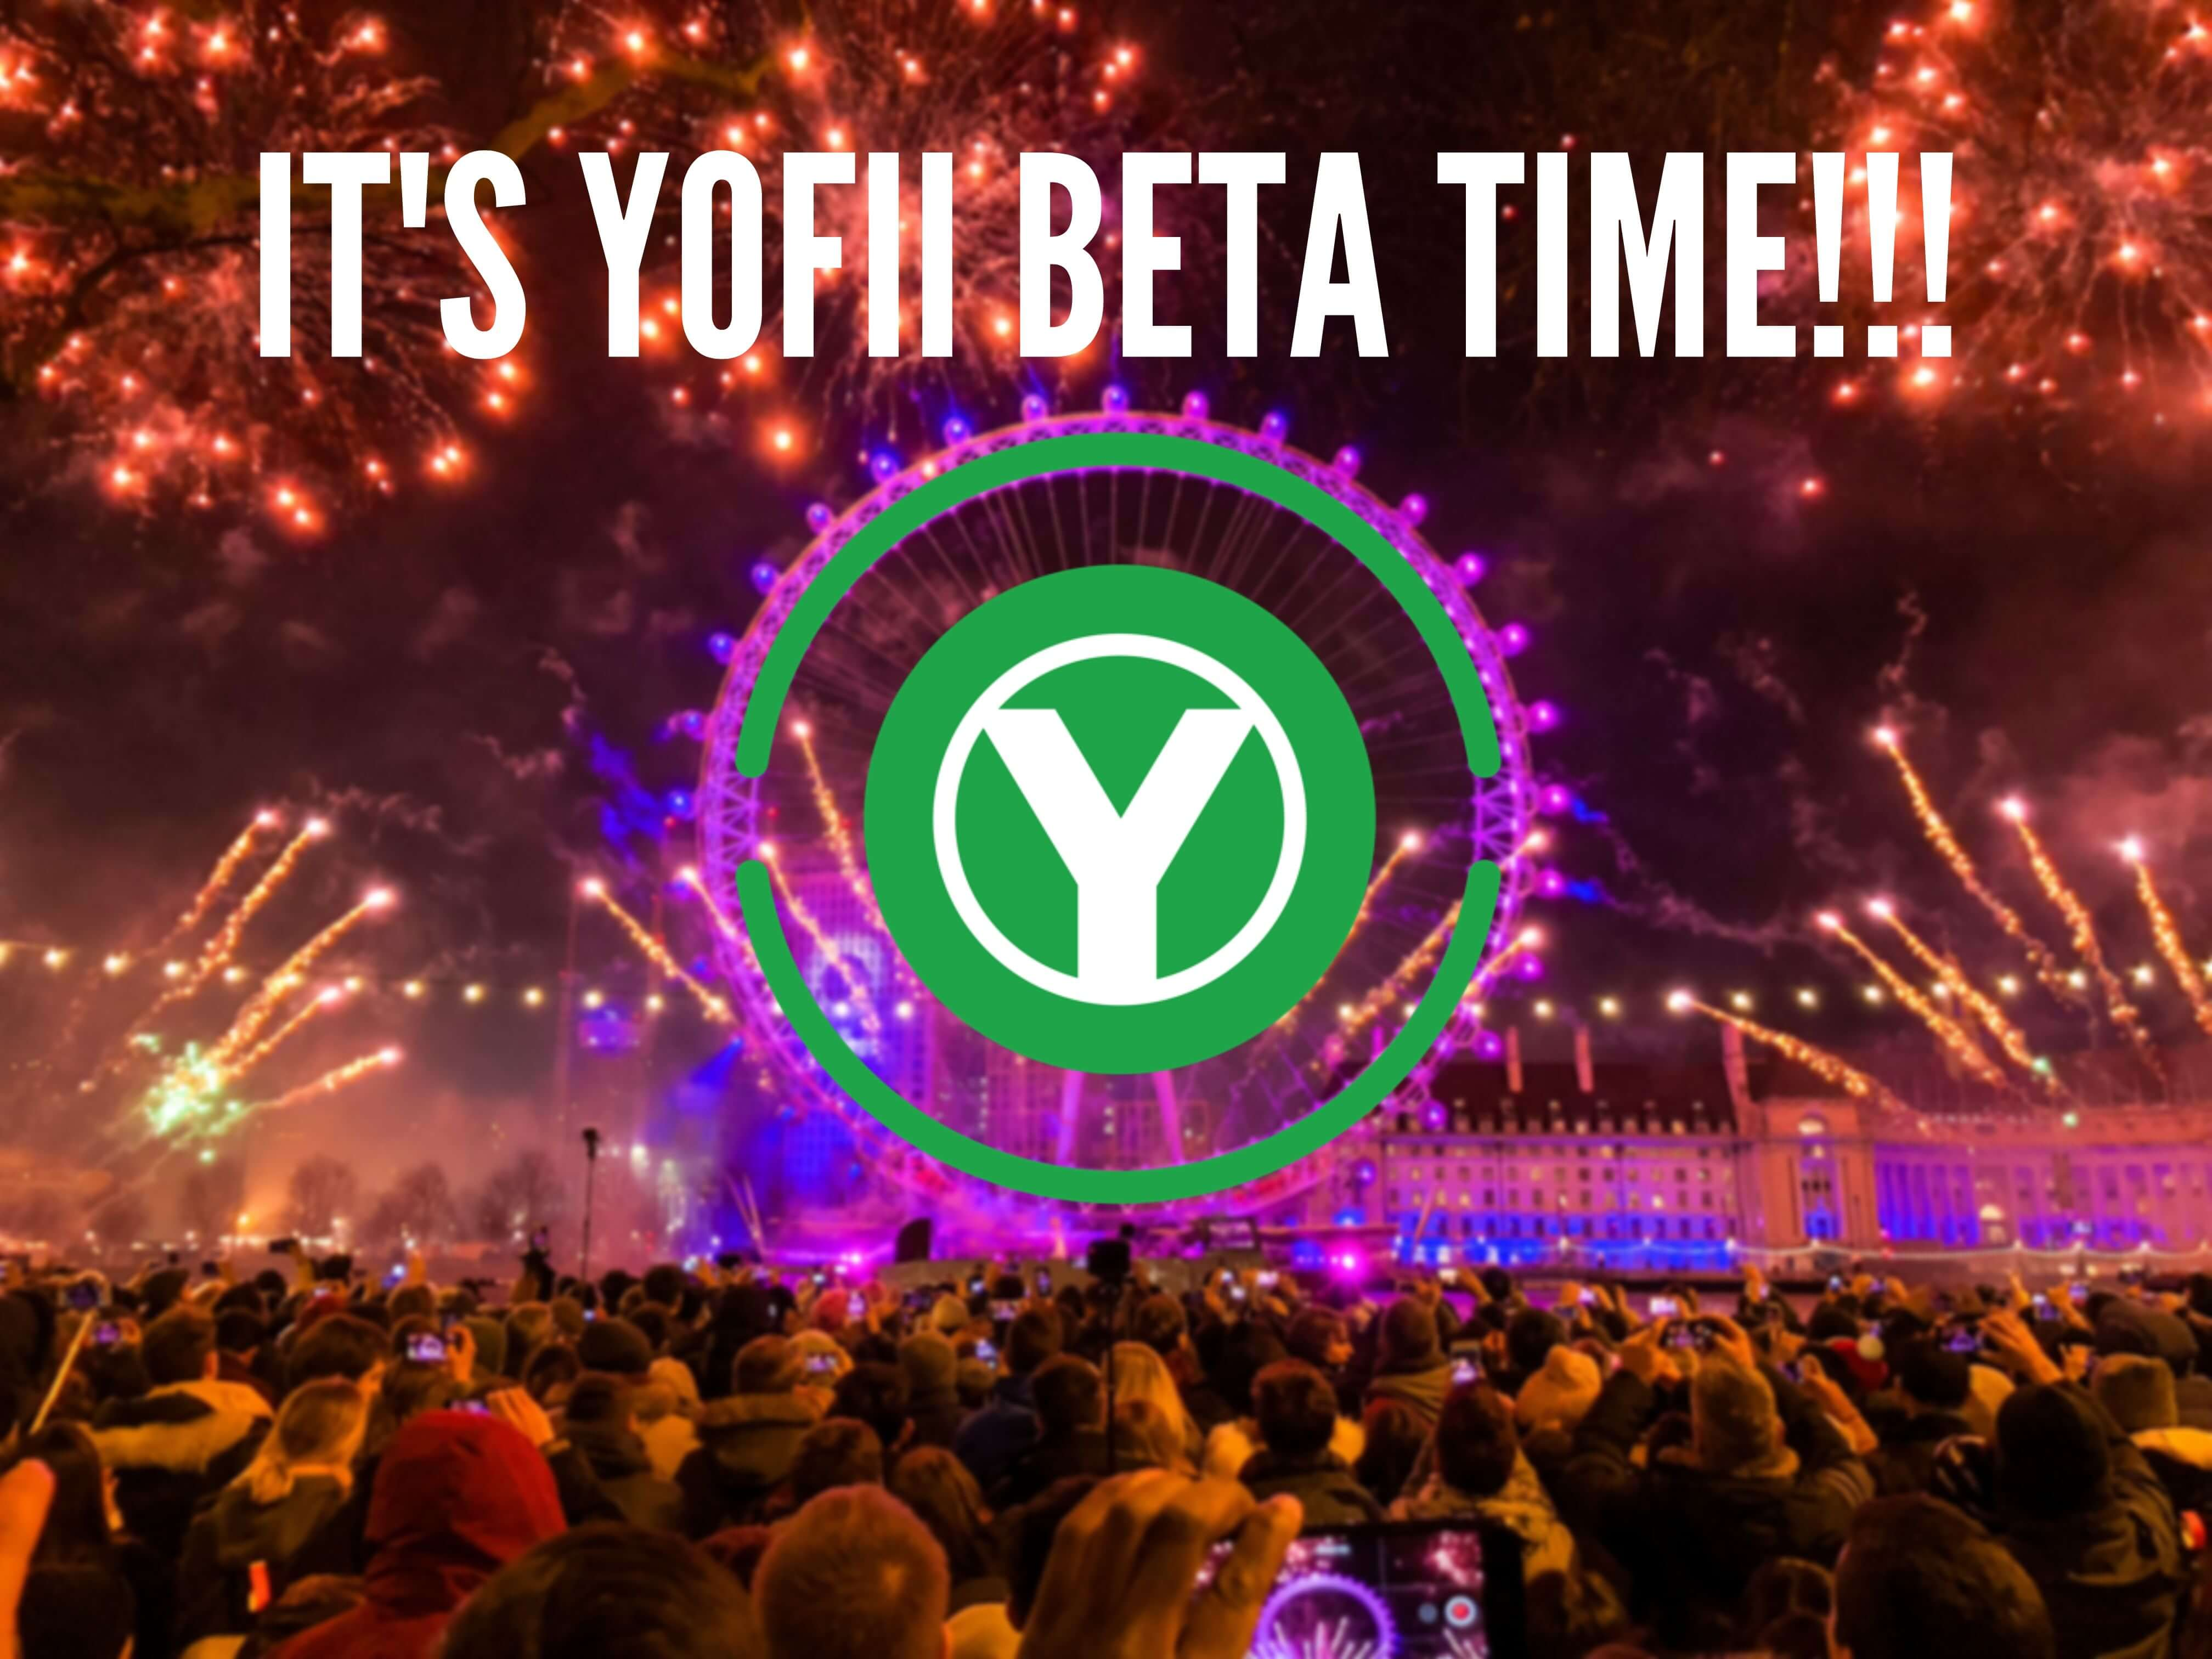 Yofii BETA Time